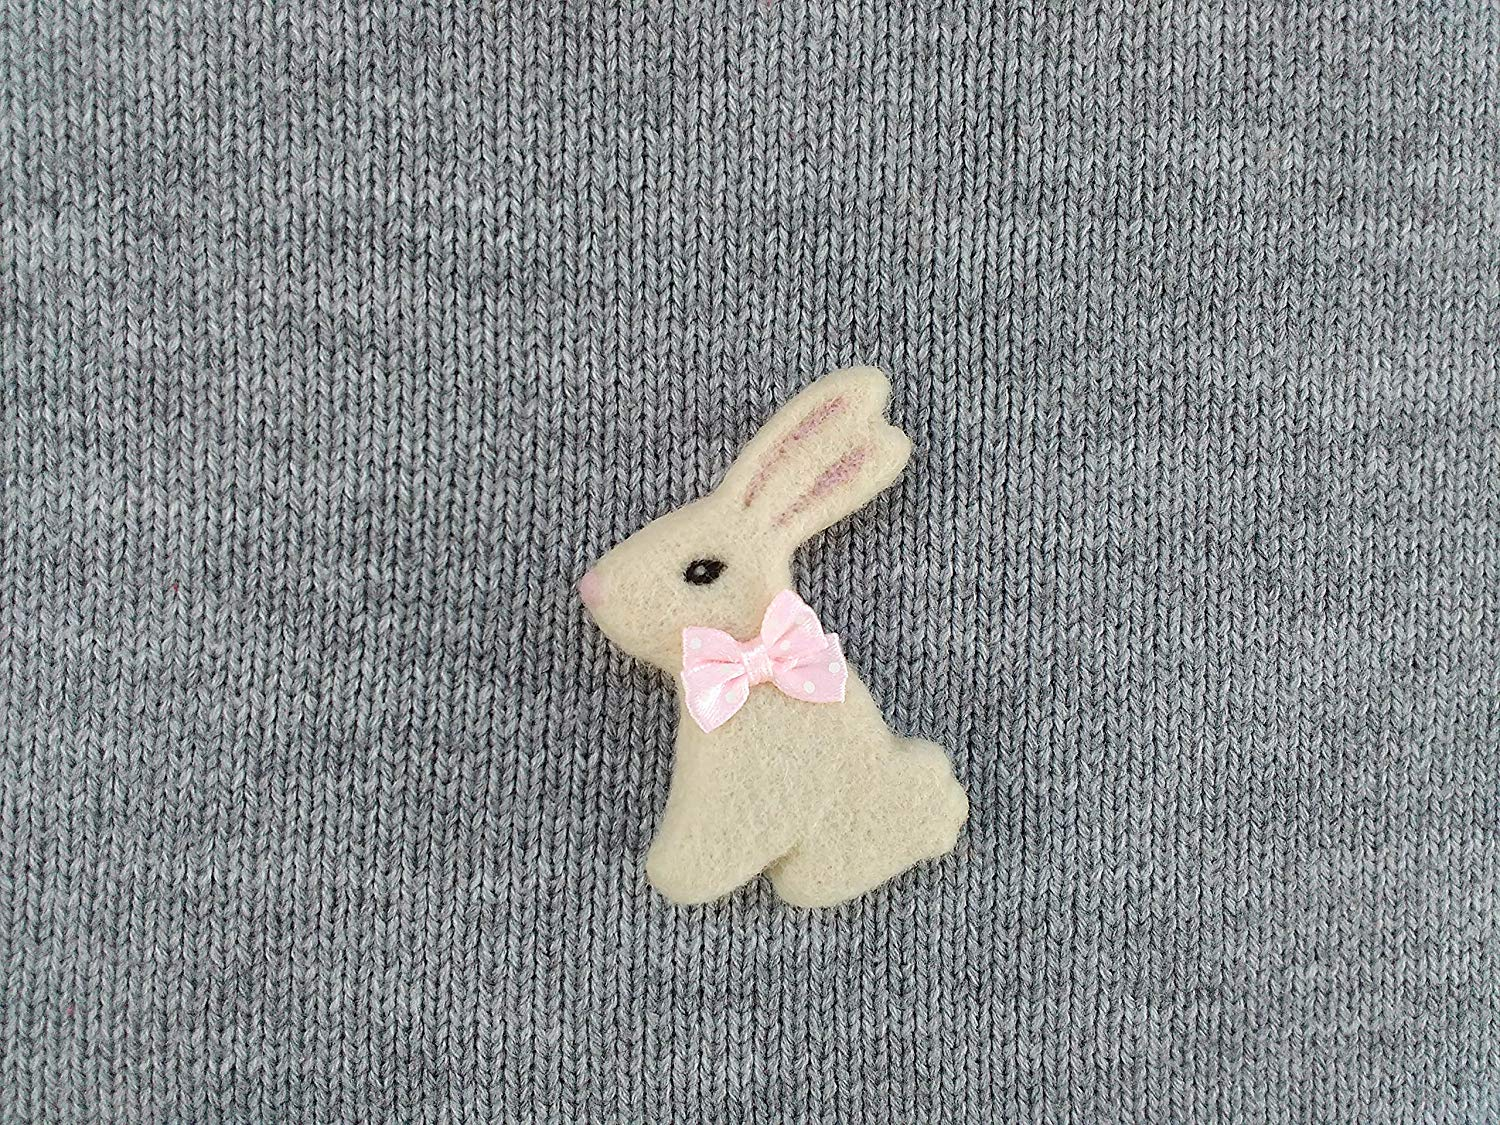 f83b58910 Get Quotations · White bunny brooch, Needle felted rabbit, Needle felt bunny,  Easter bunny brooch